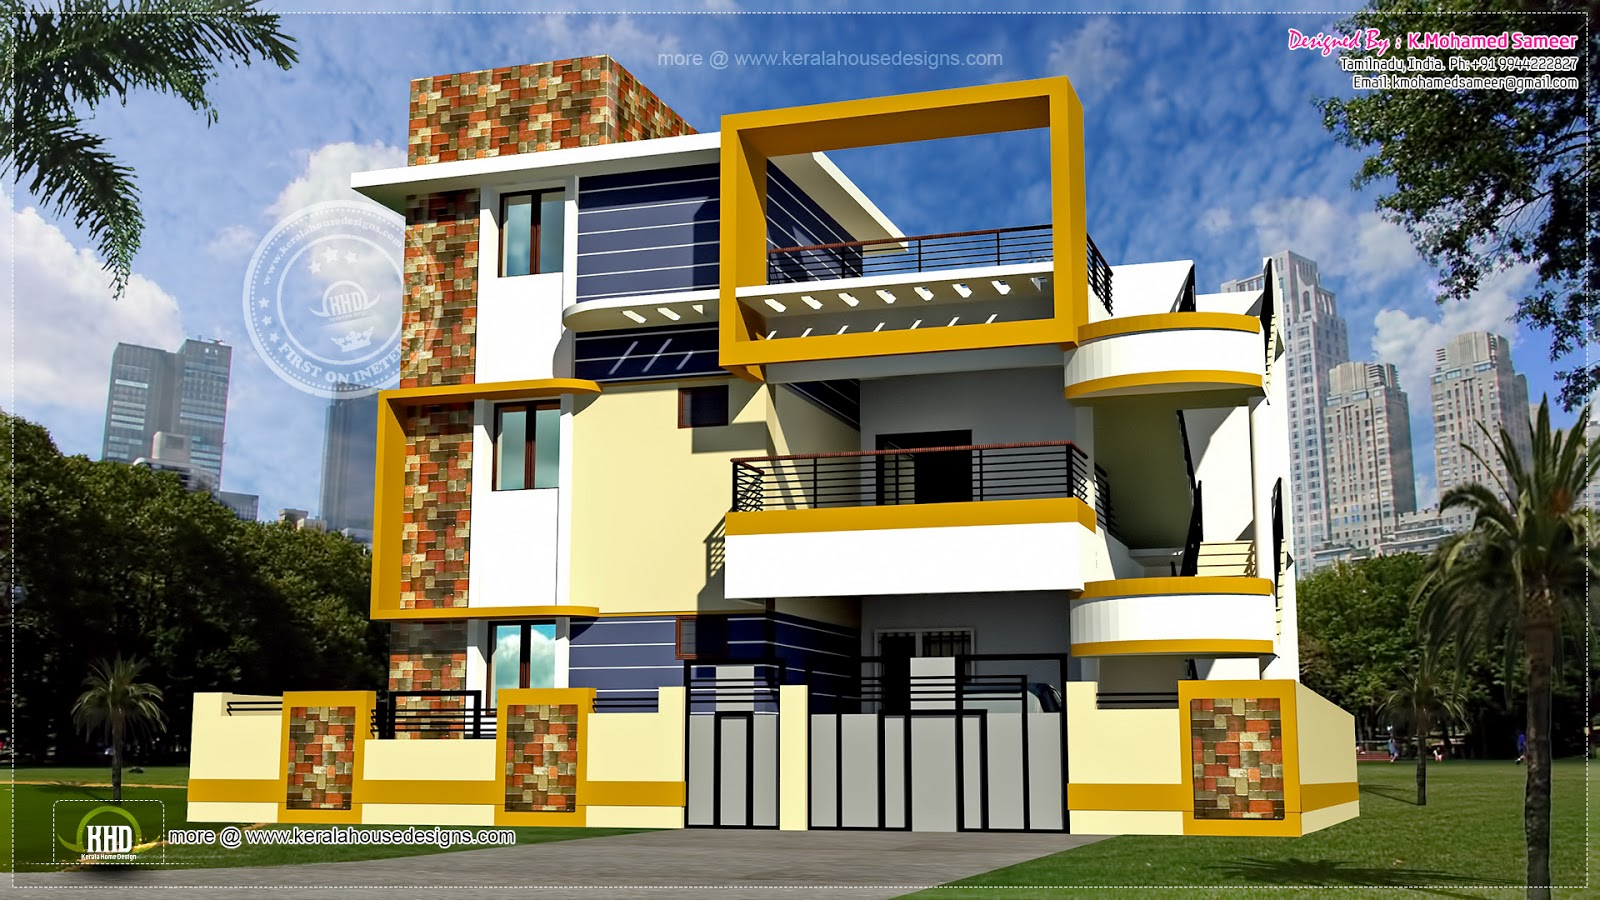 Modern 3 floor tamilnadu house design home kerala plans for 2 floor house design